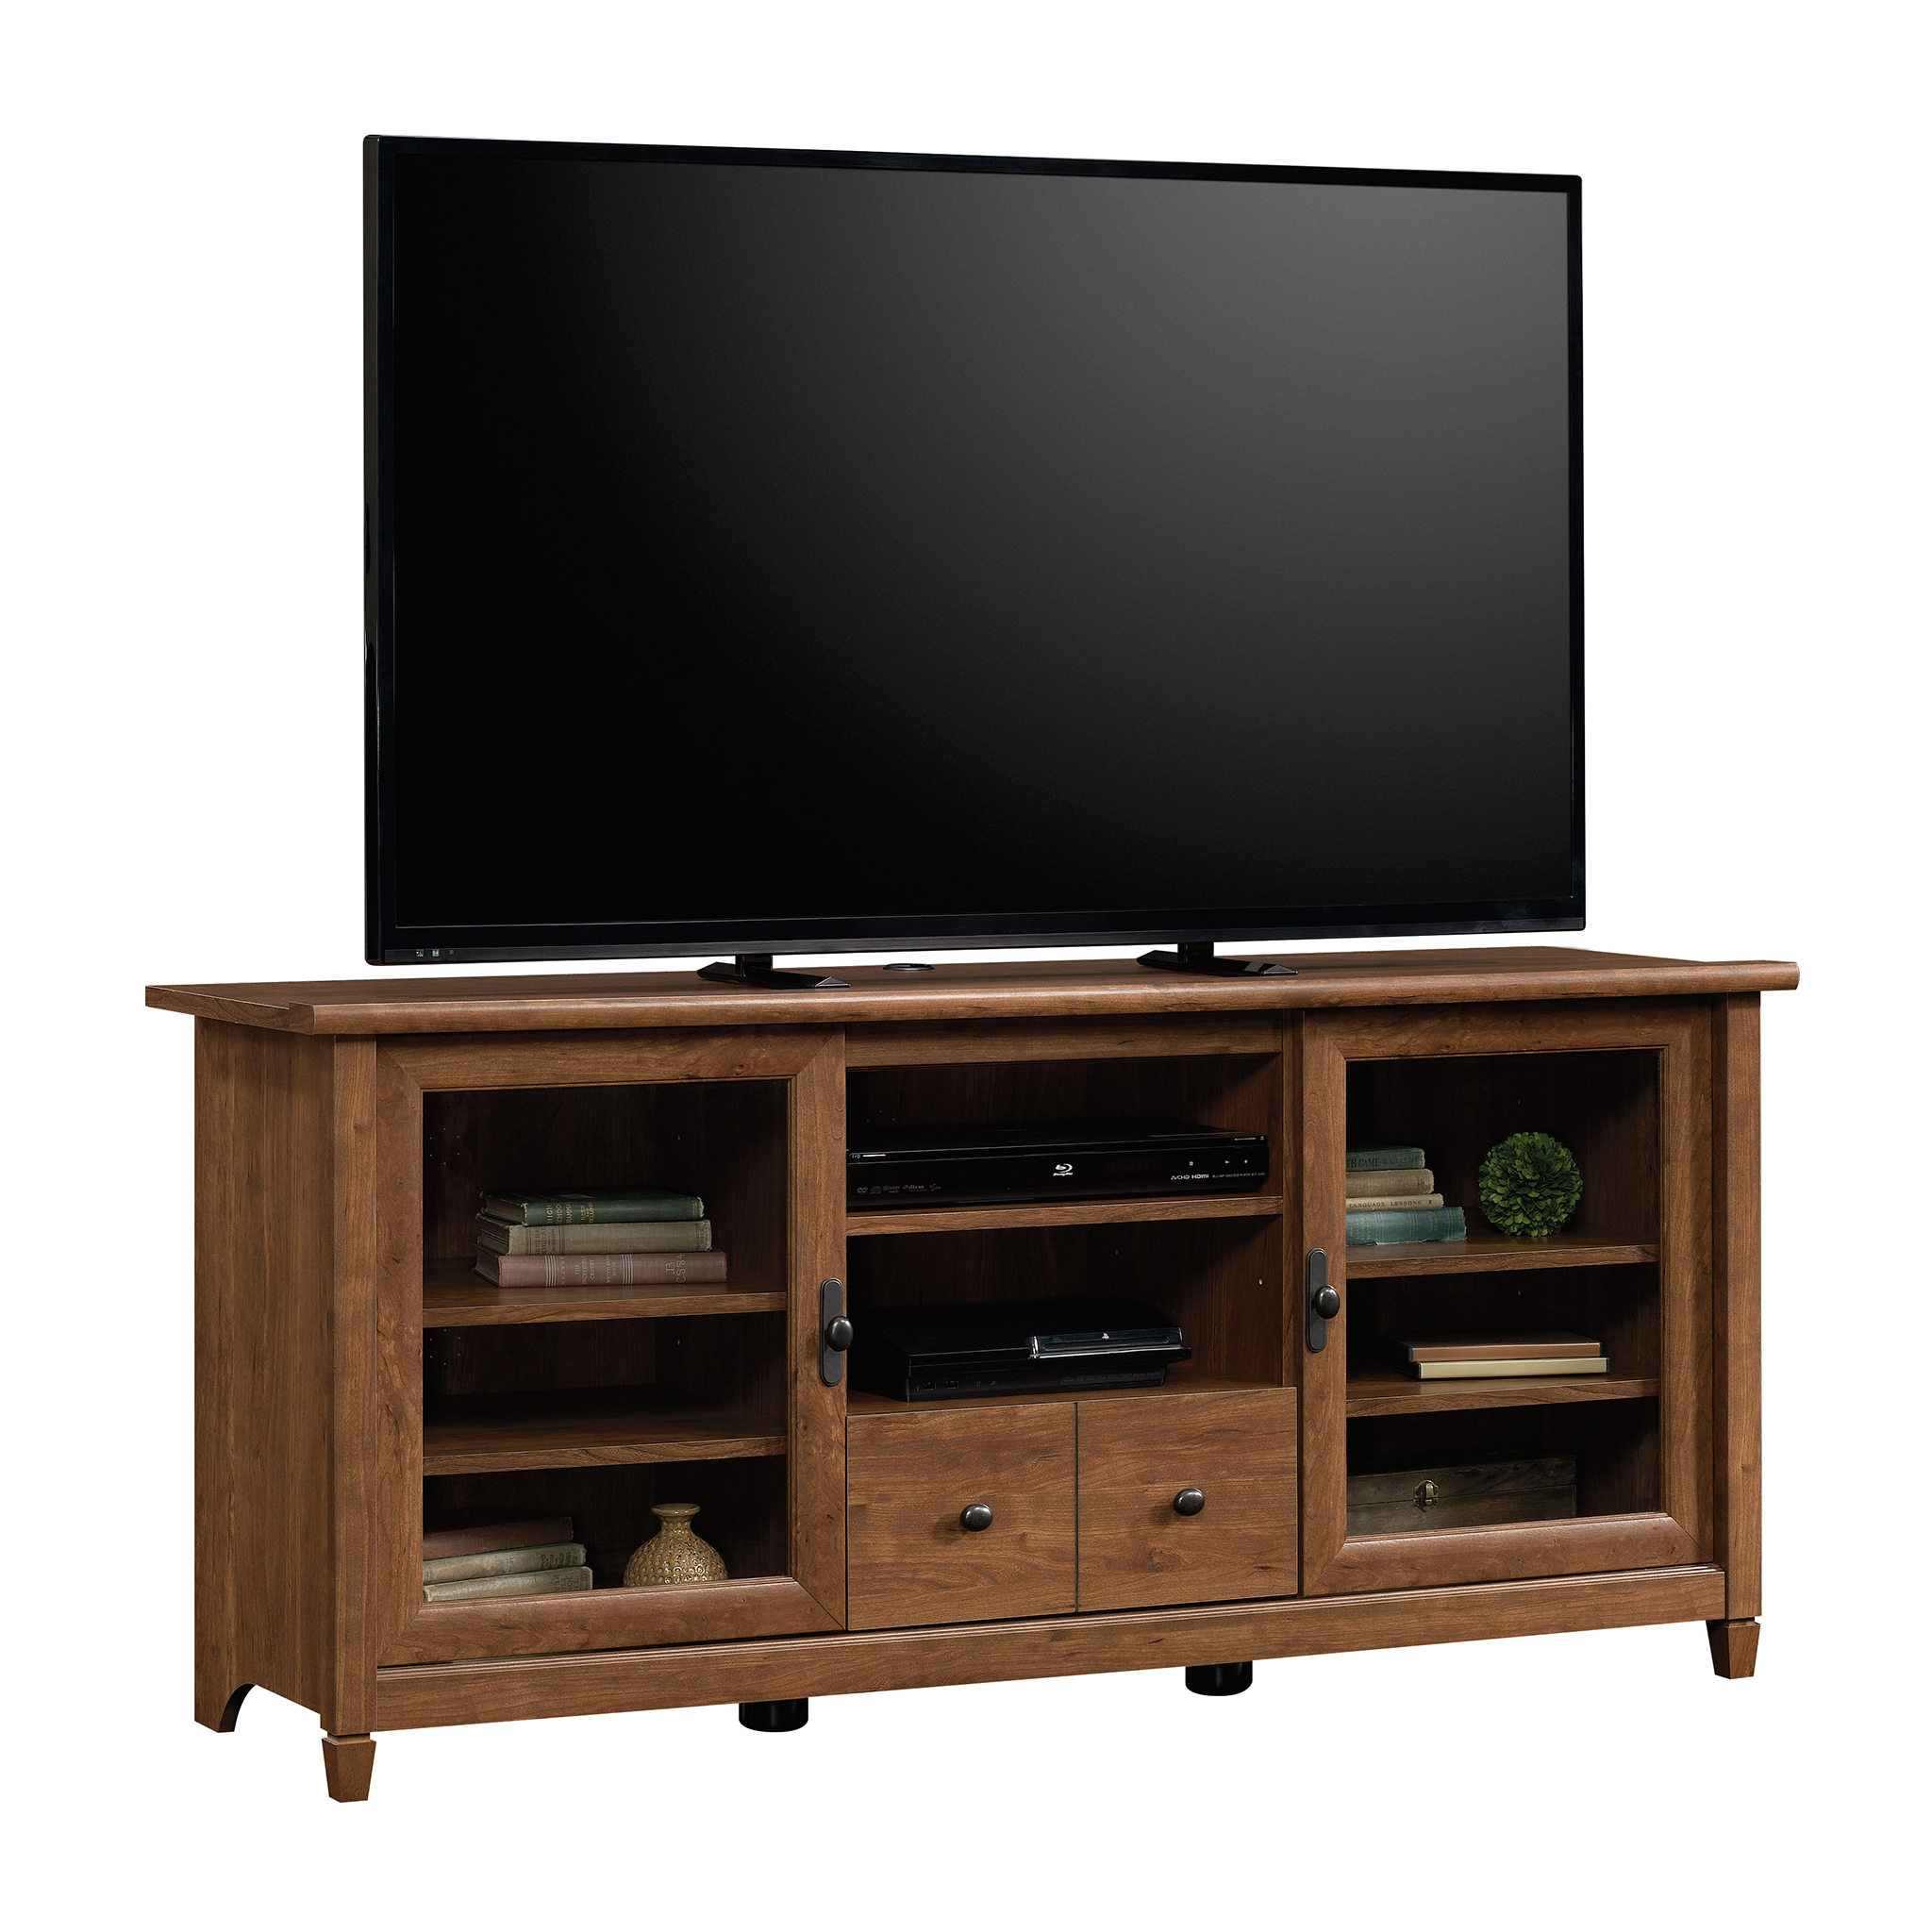 Sauder Edge Water Entertainment Credenza For Tvs Up To 55 Multiple